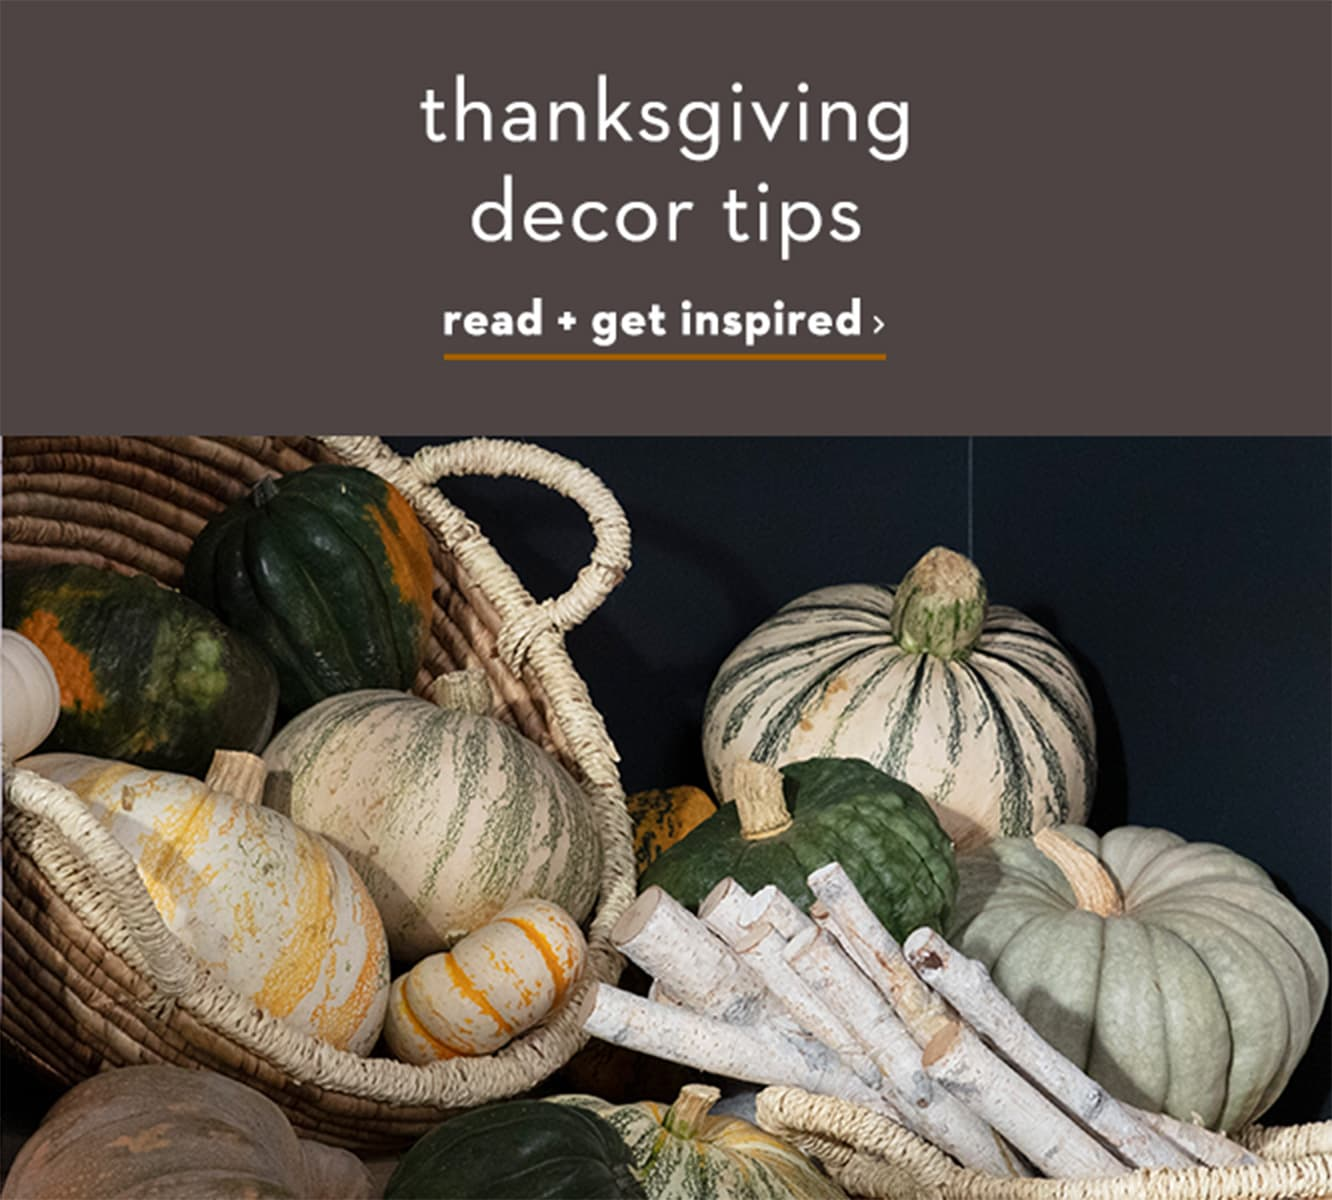 Thanksgiving decor tips.